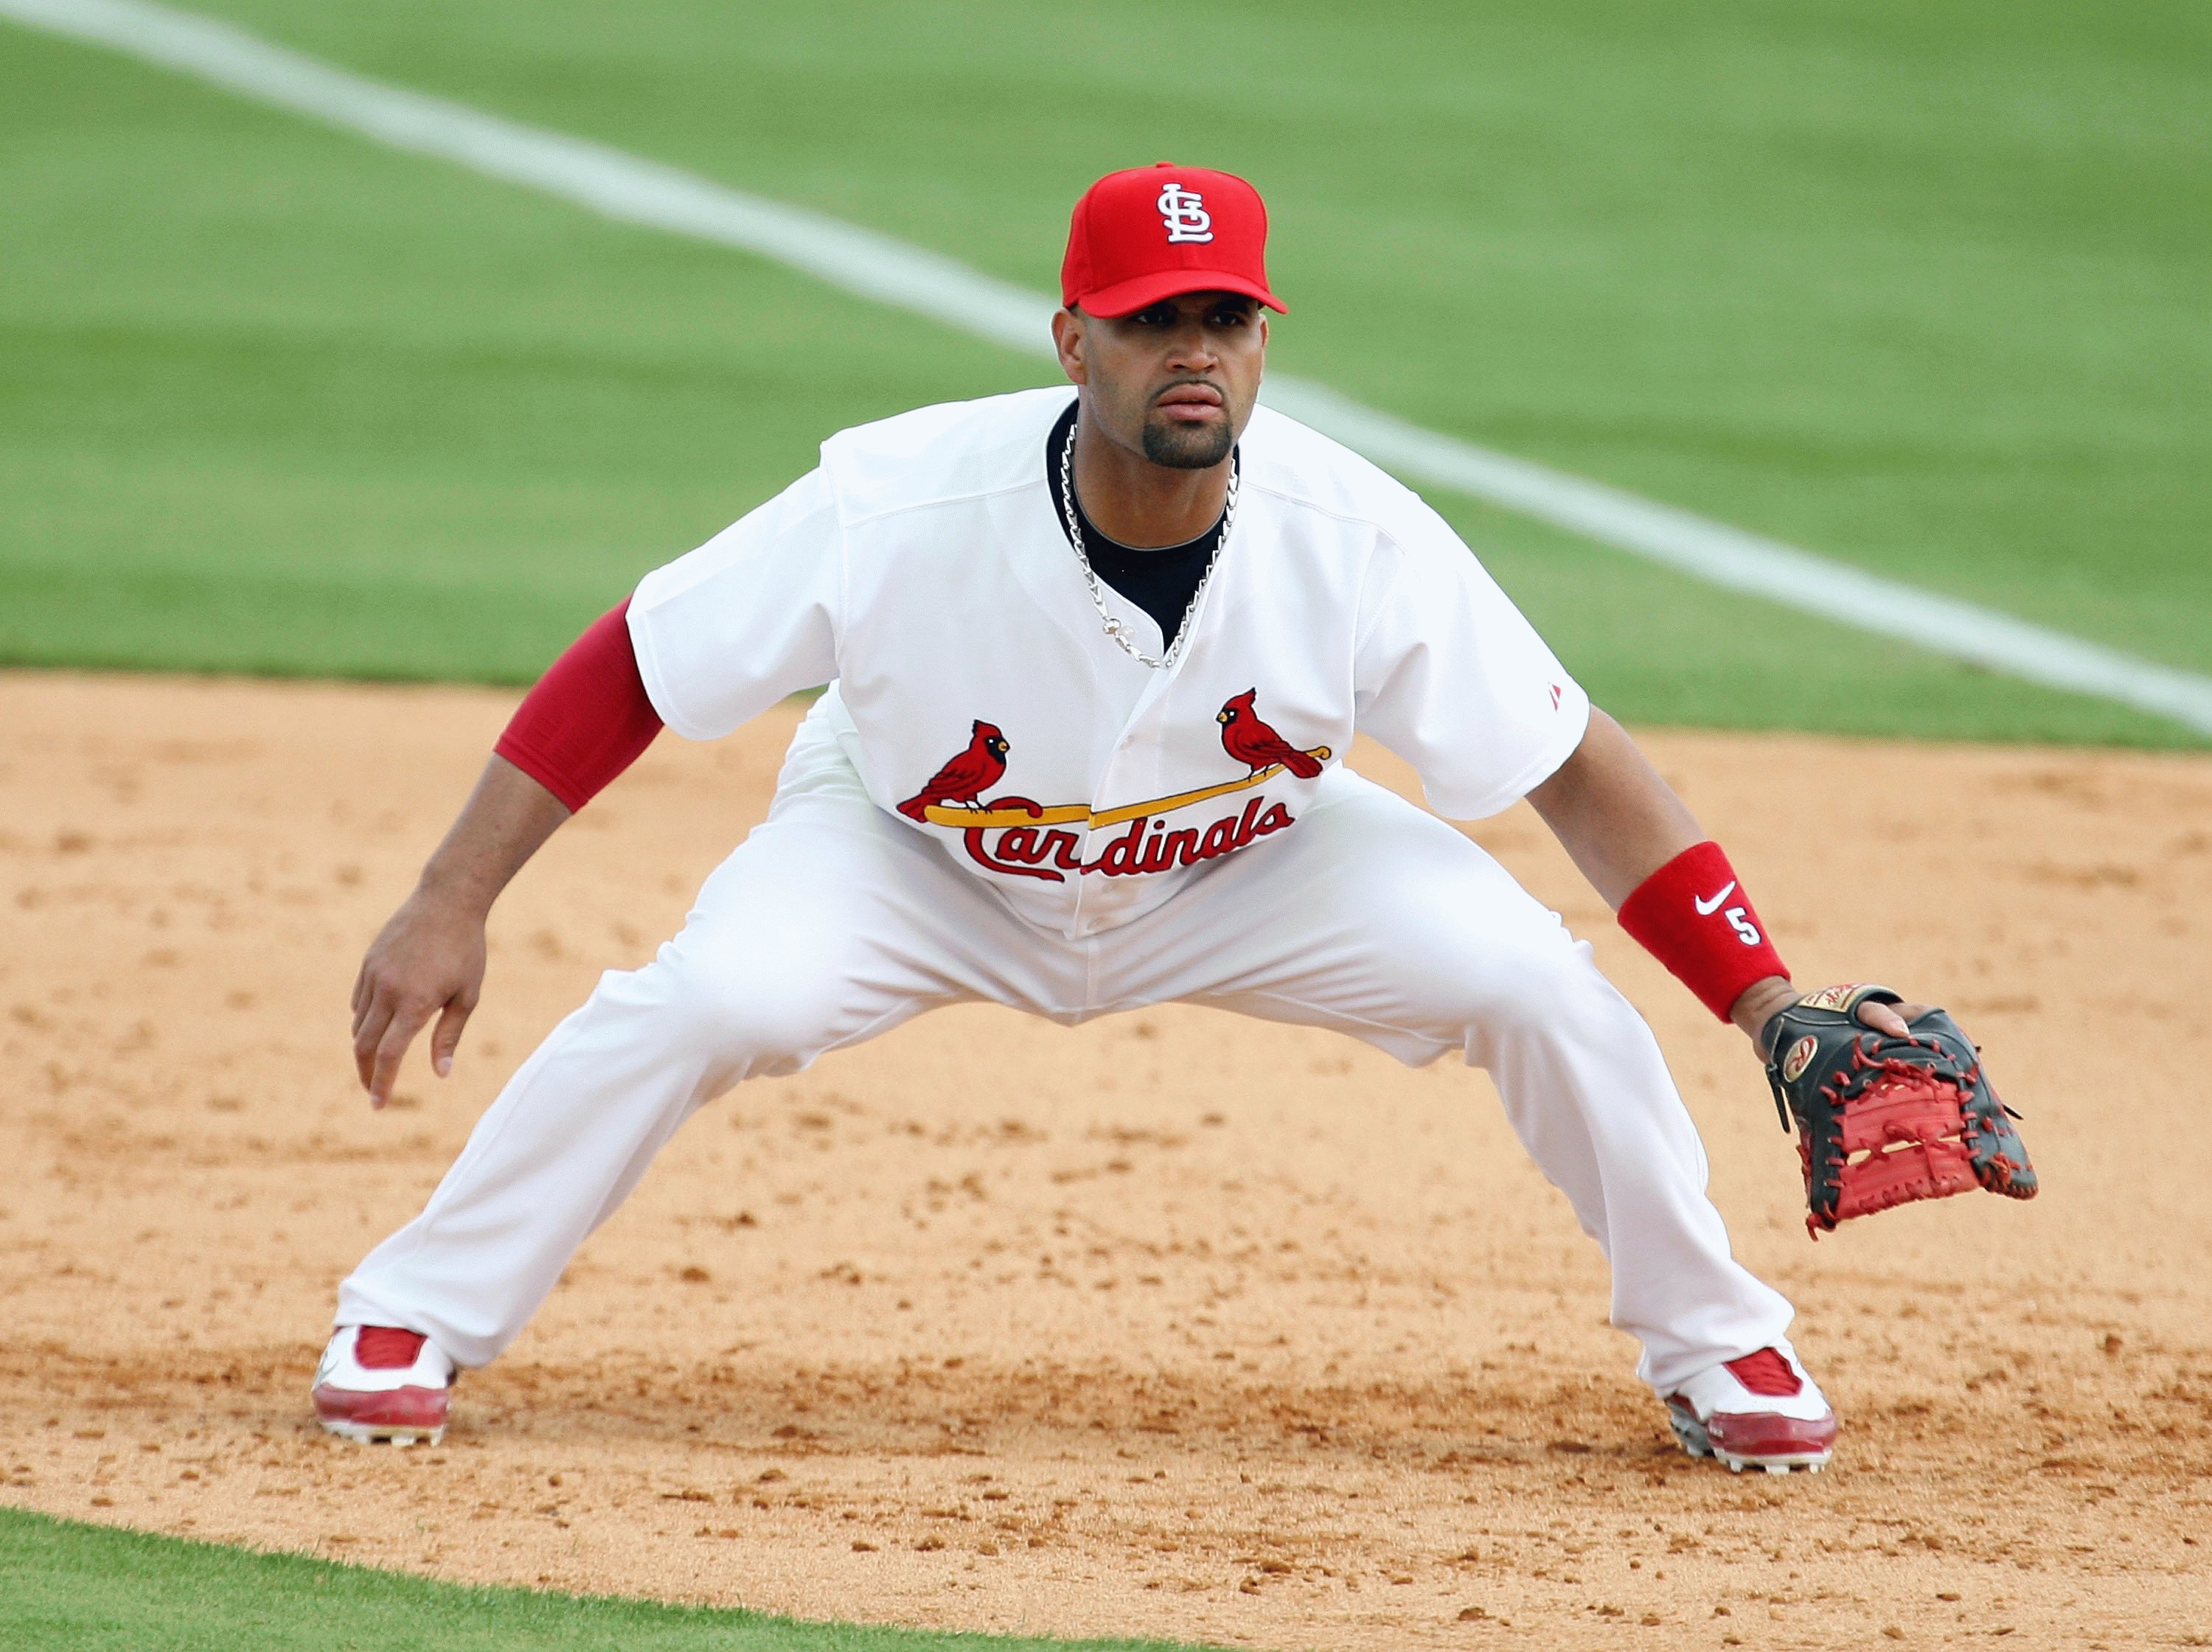 JUPITER, FL - FEBRUARY 25:  First baseman Albert Pujols #5 of the St. Louis Cardinals gets set against the Florida Marlins during a spring training game at Roger Dean Stadium on February 25, 2009 in Jupiter, Florida. The Marlins and the Mets played to a 5